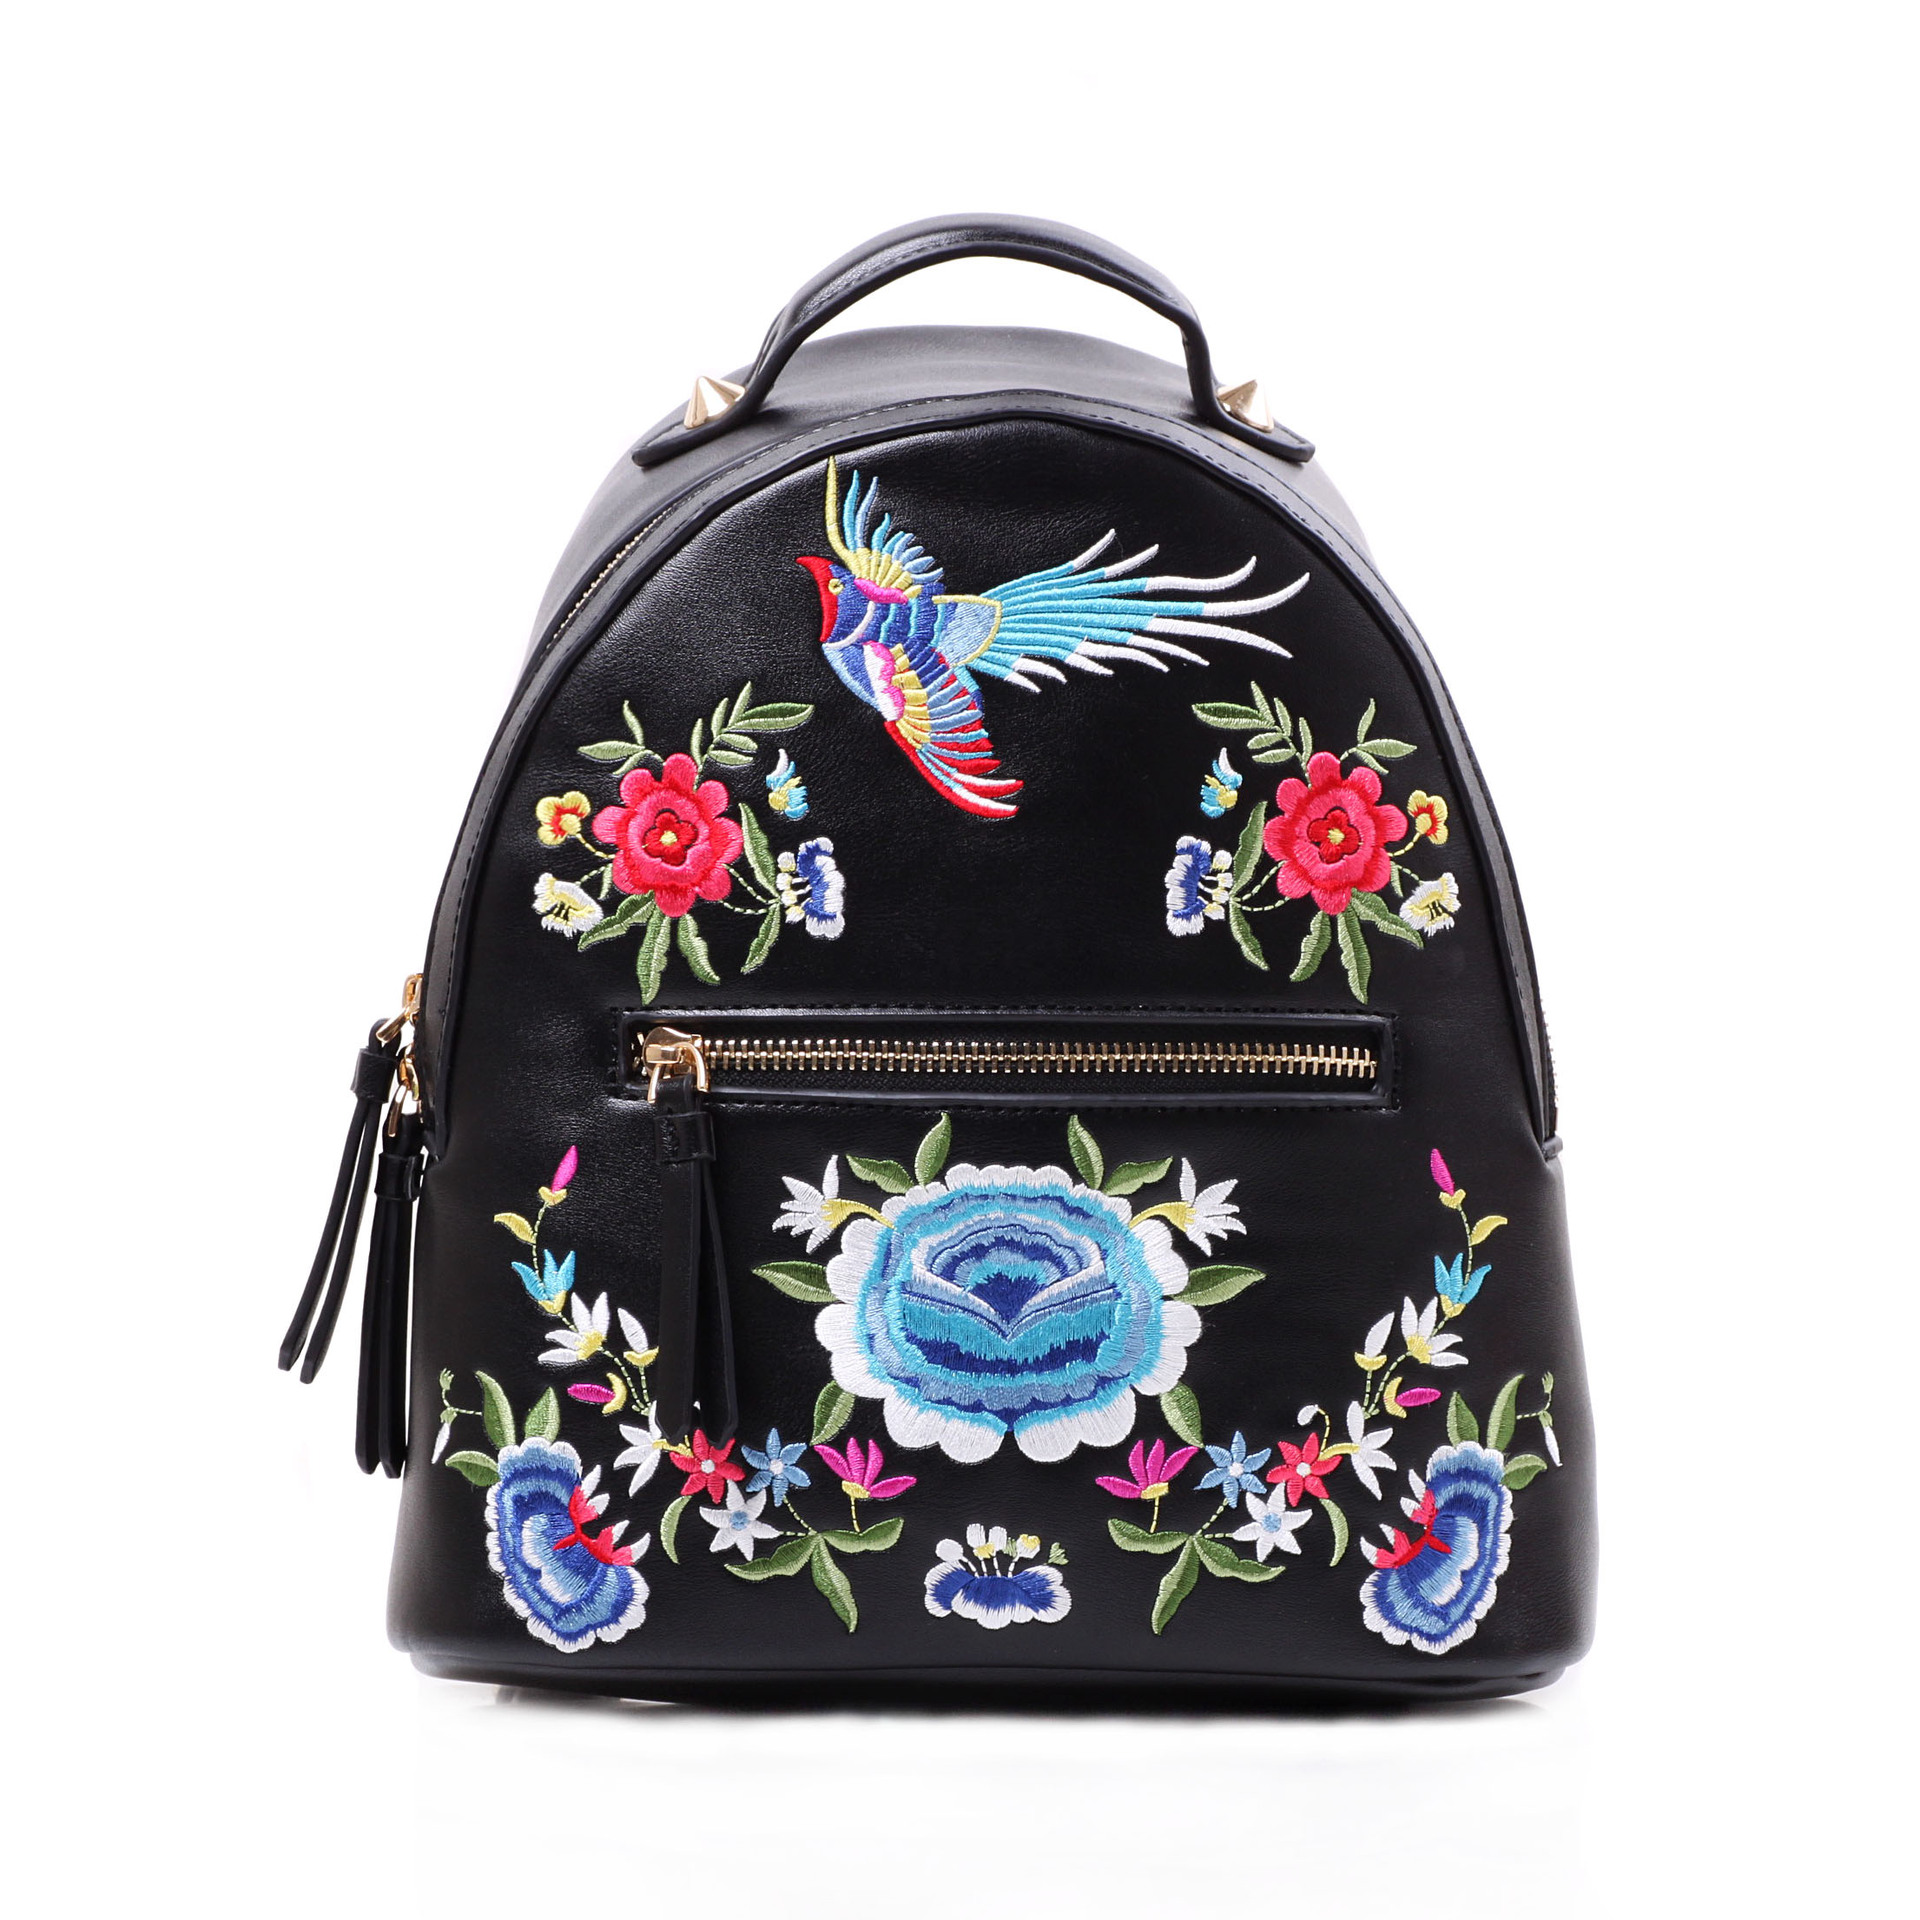 Ethnic Embroidered Backpack For Girls Folk Phoenix Bag Ladies Flower Embroidery  Backpack Small Back Pack Women's